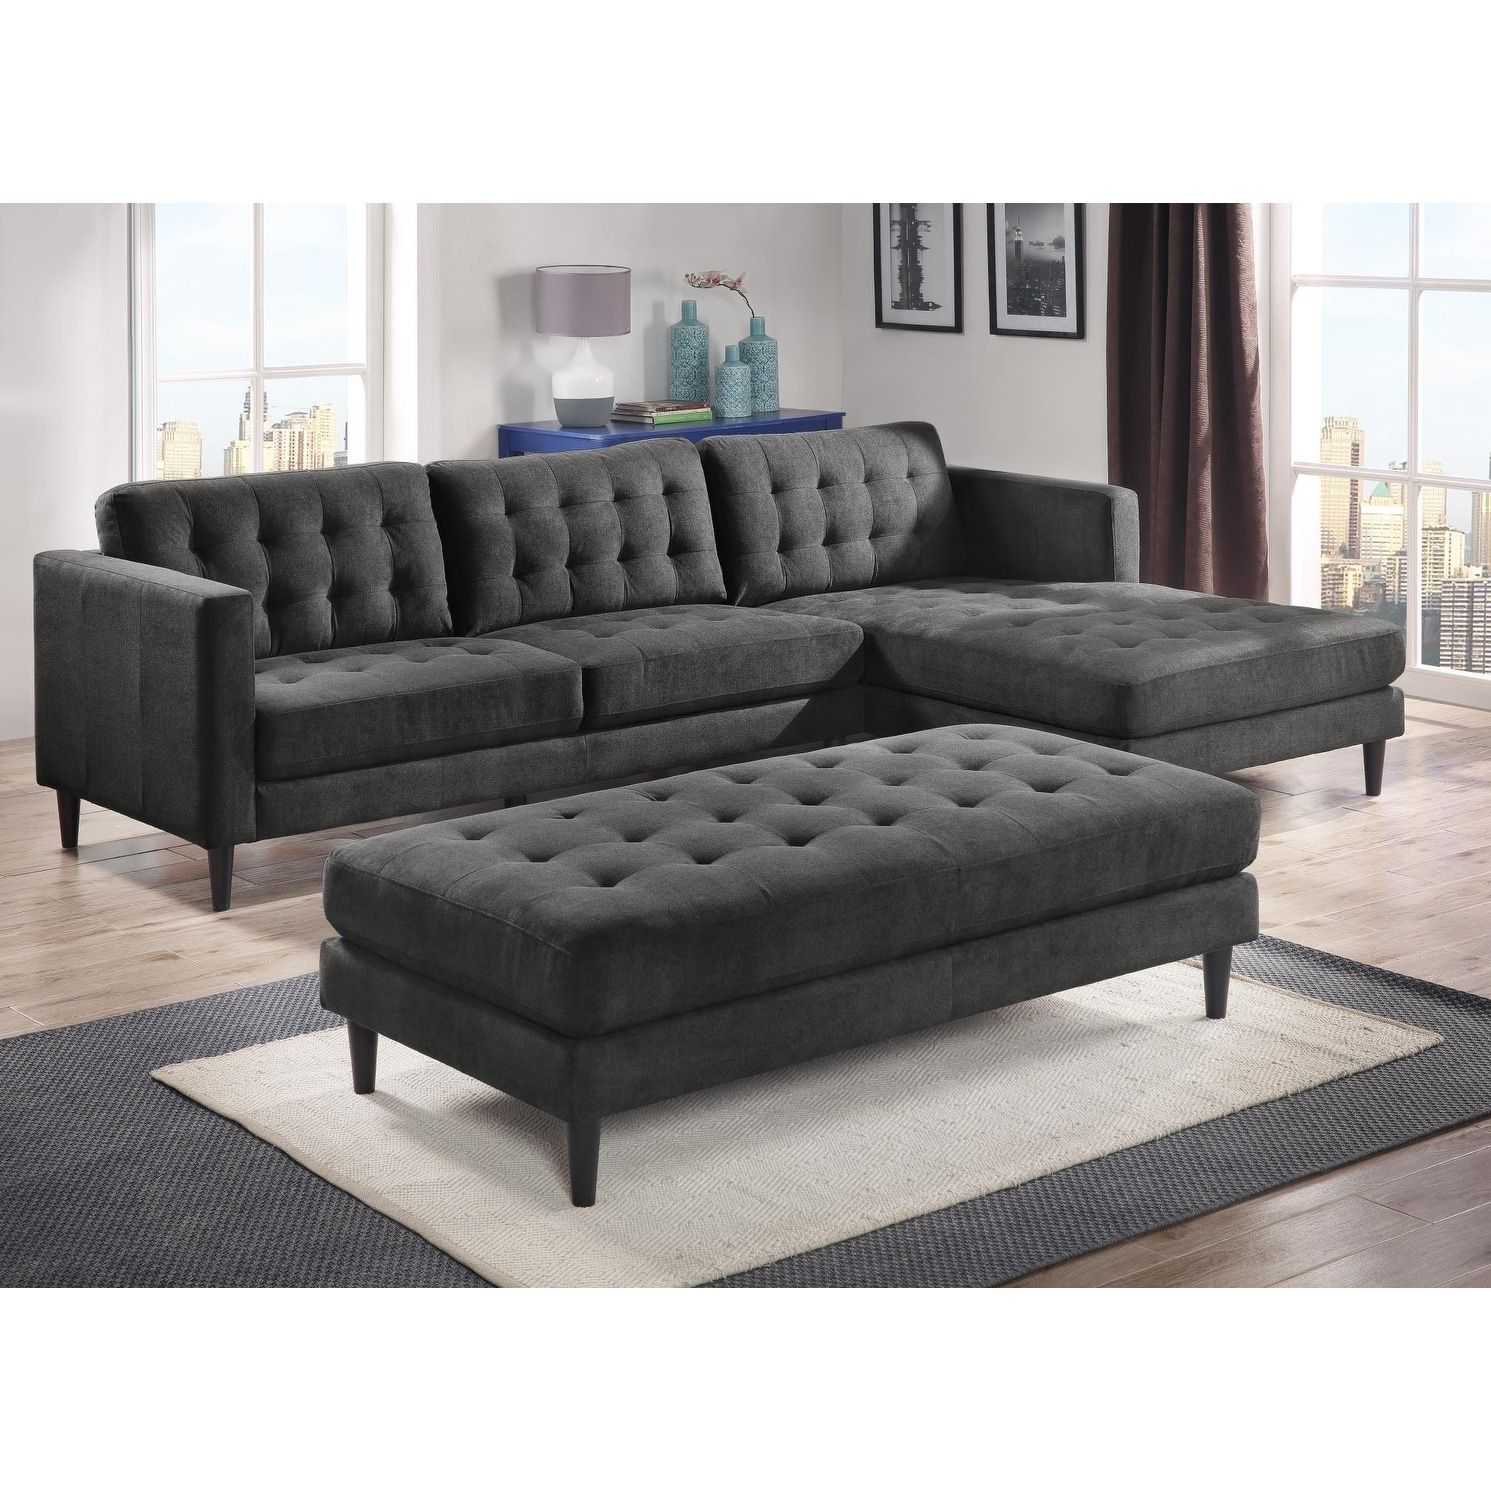 lyke home leila tufted sectional and ottoman set charcoal grey rh pinterest com